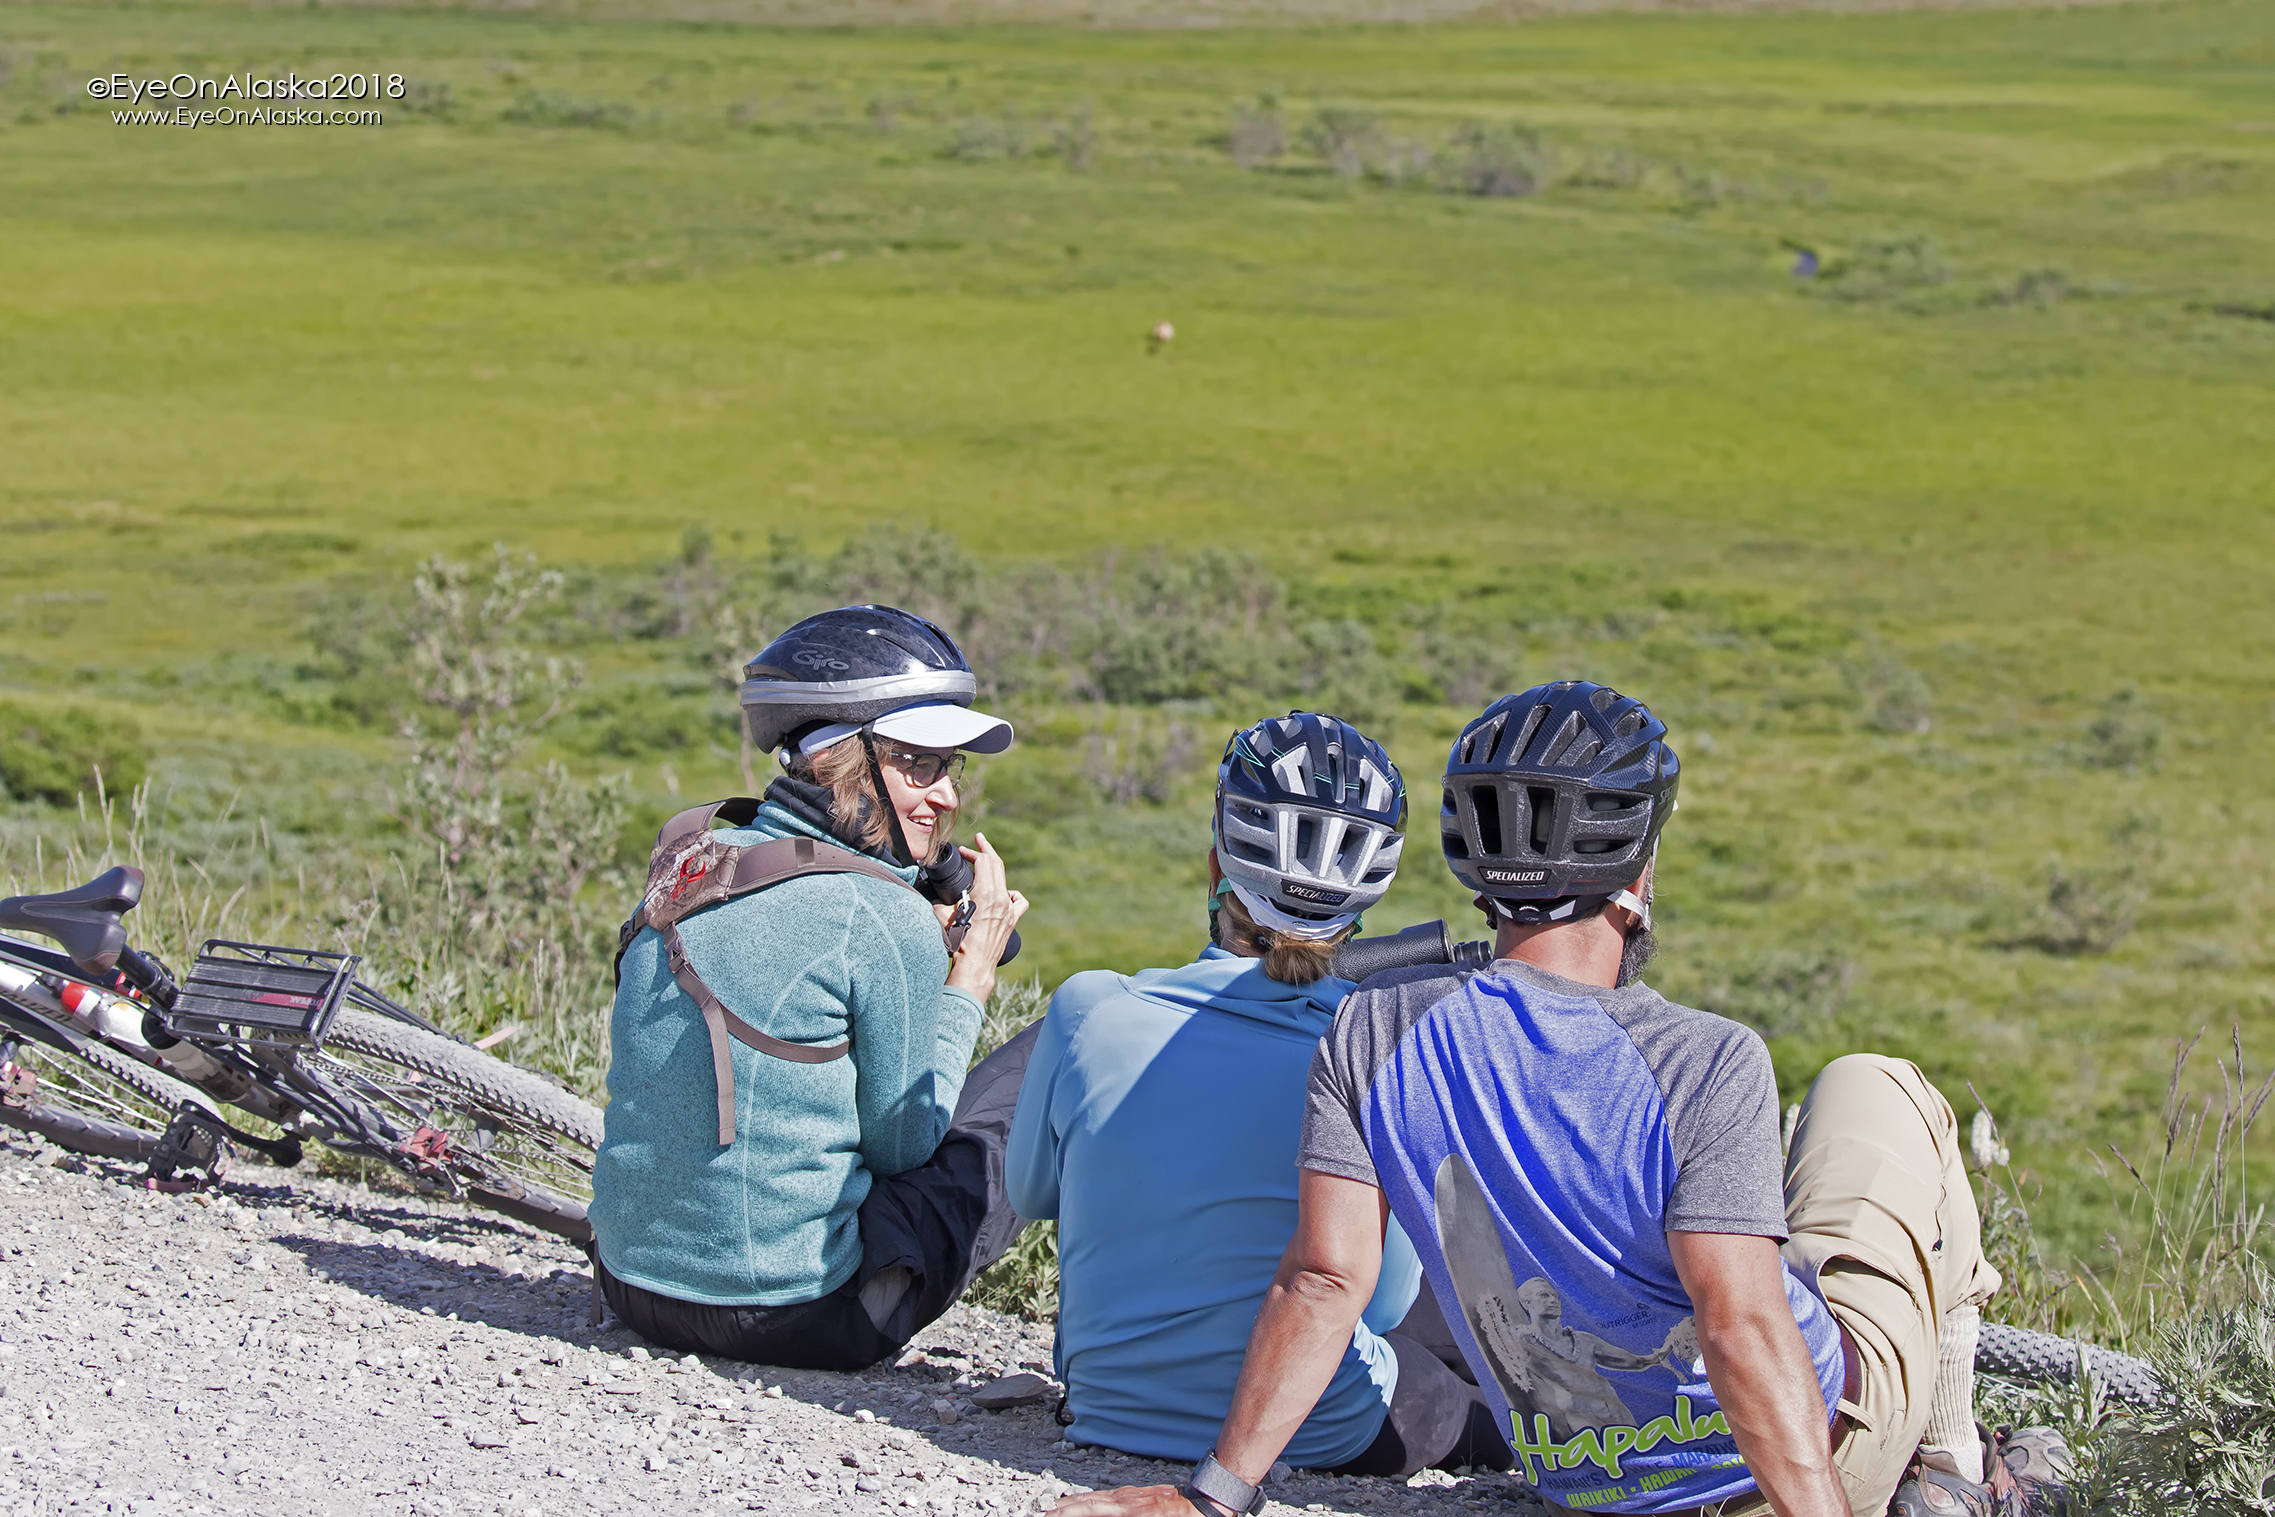 The shuttle bus couldn't stay for long, so we rode to Eielson Visitor Center and then biked back to a spot well above the bears to watch them for a long time. The cubs were really playful.